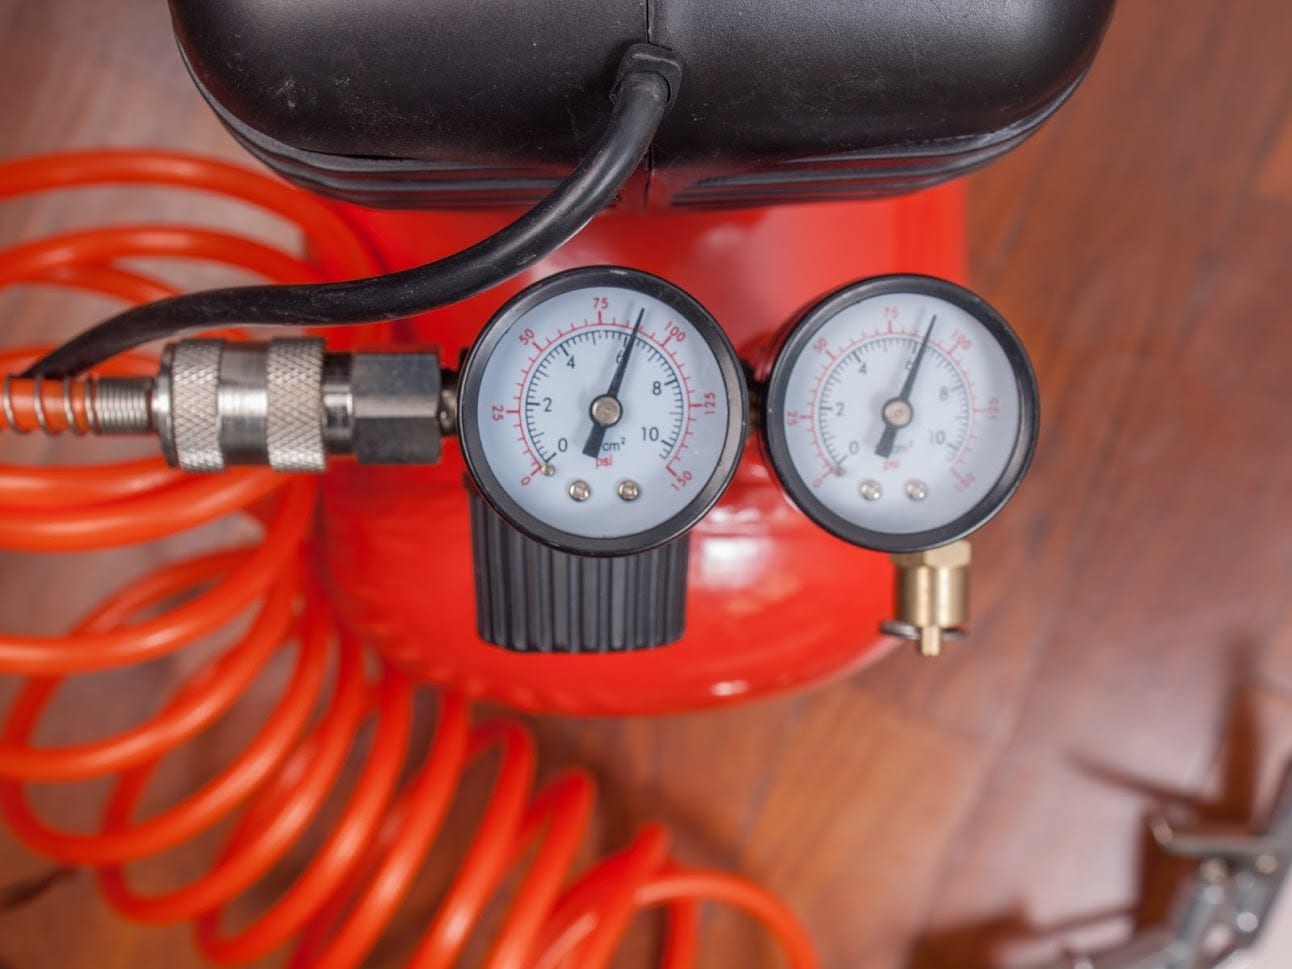 Detail of air compressor with manometer to measure air pressure